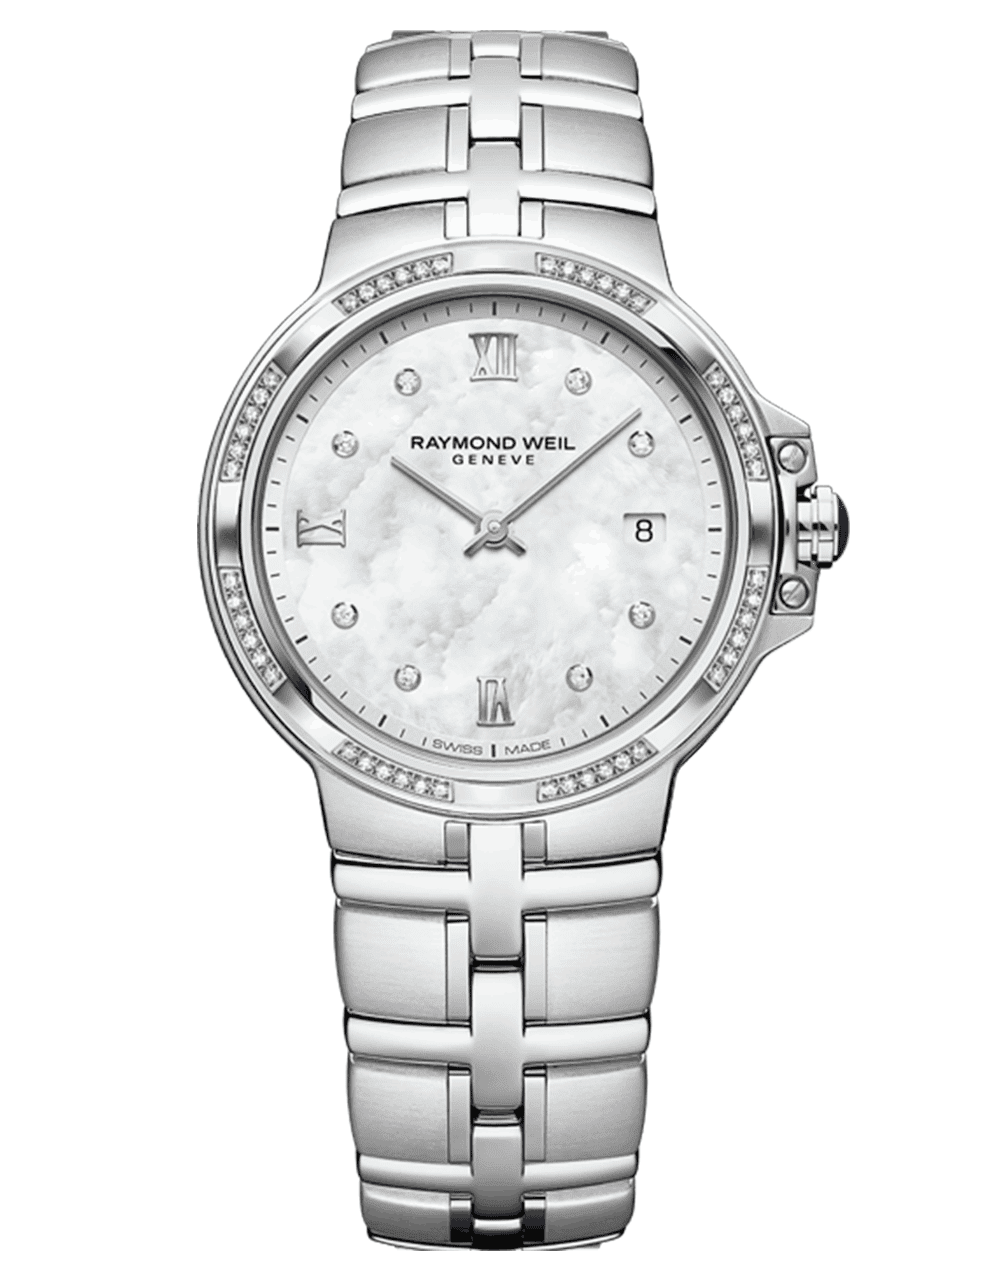 RAYMOND WEIL Geneve Mother of Pearl Ladies Luxury Watch